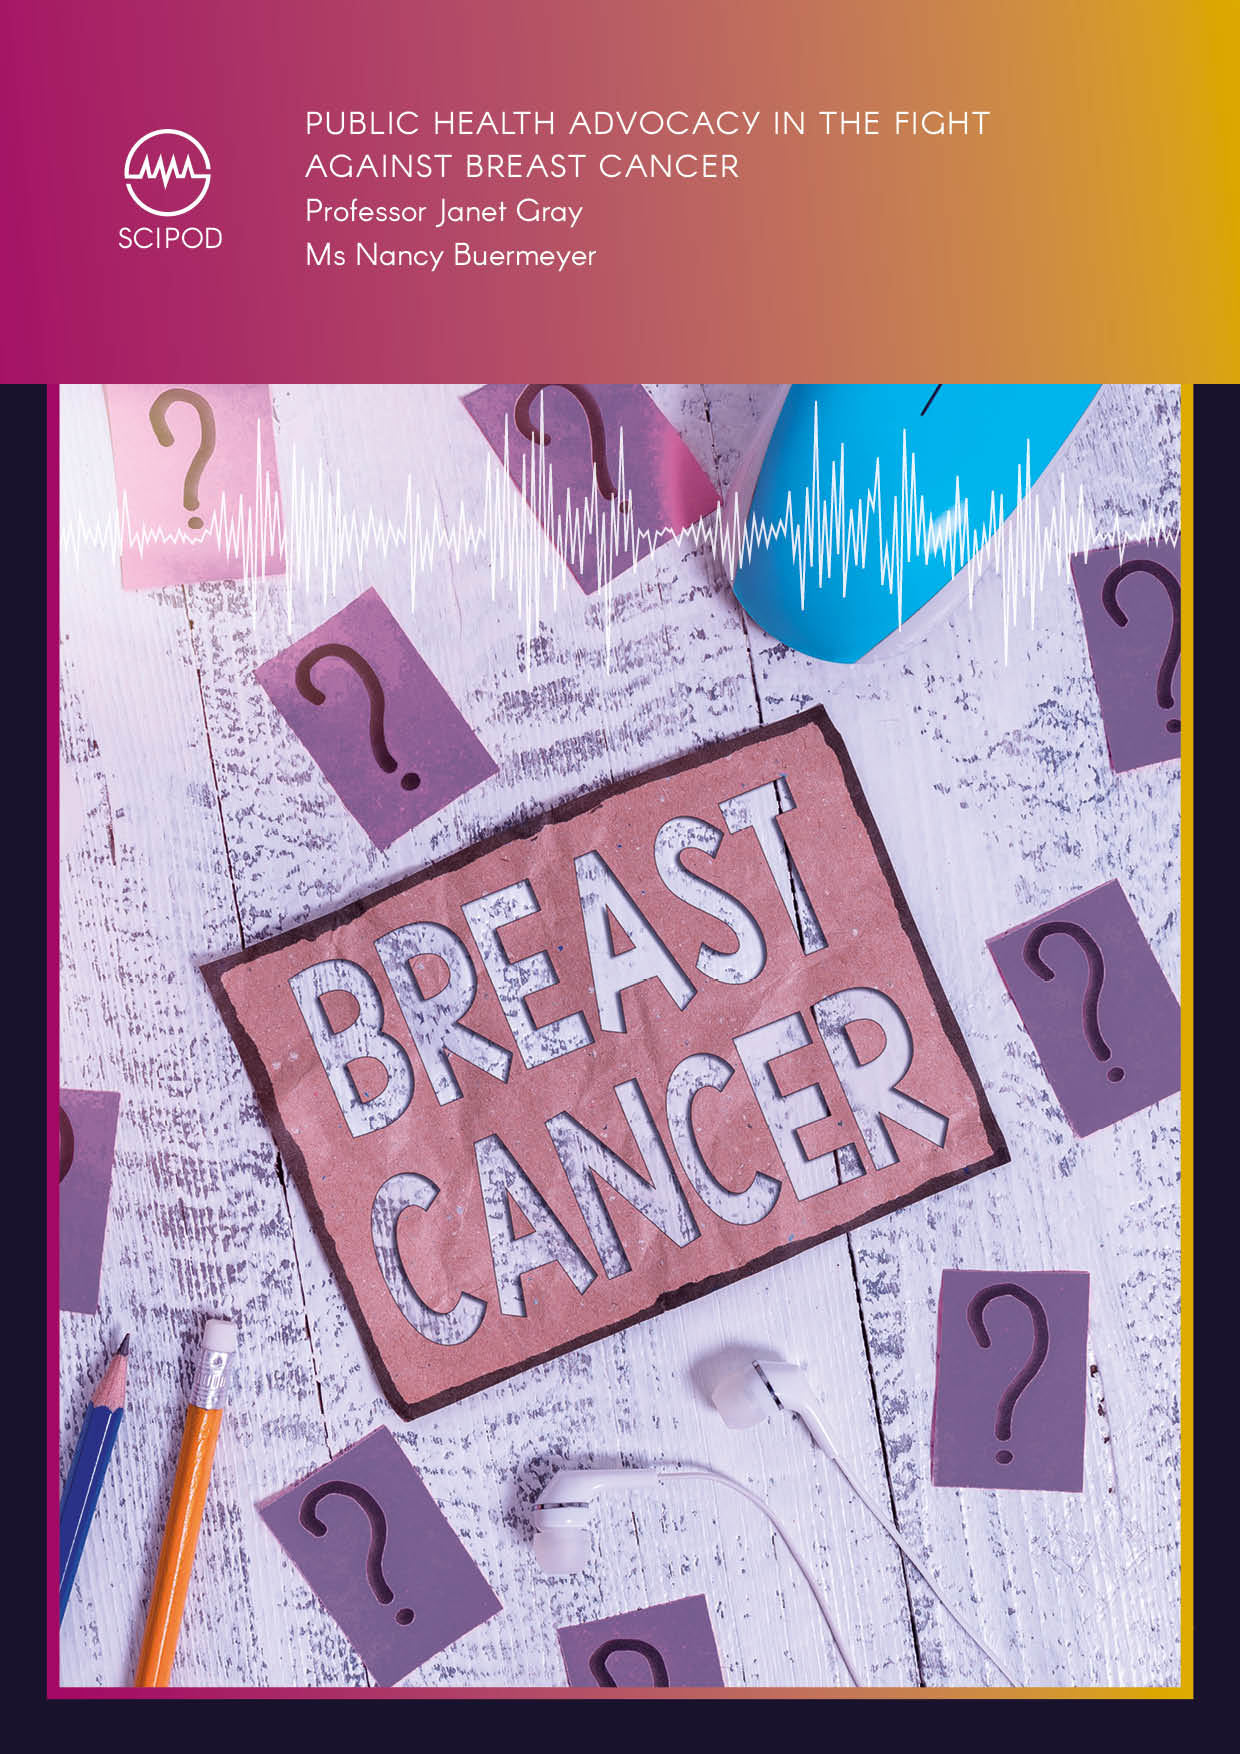 Public Health Advocacy in the Fight Against Breast Cancer – Professor Janet Gray and Nancy Buermeyer